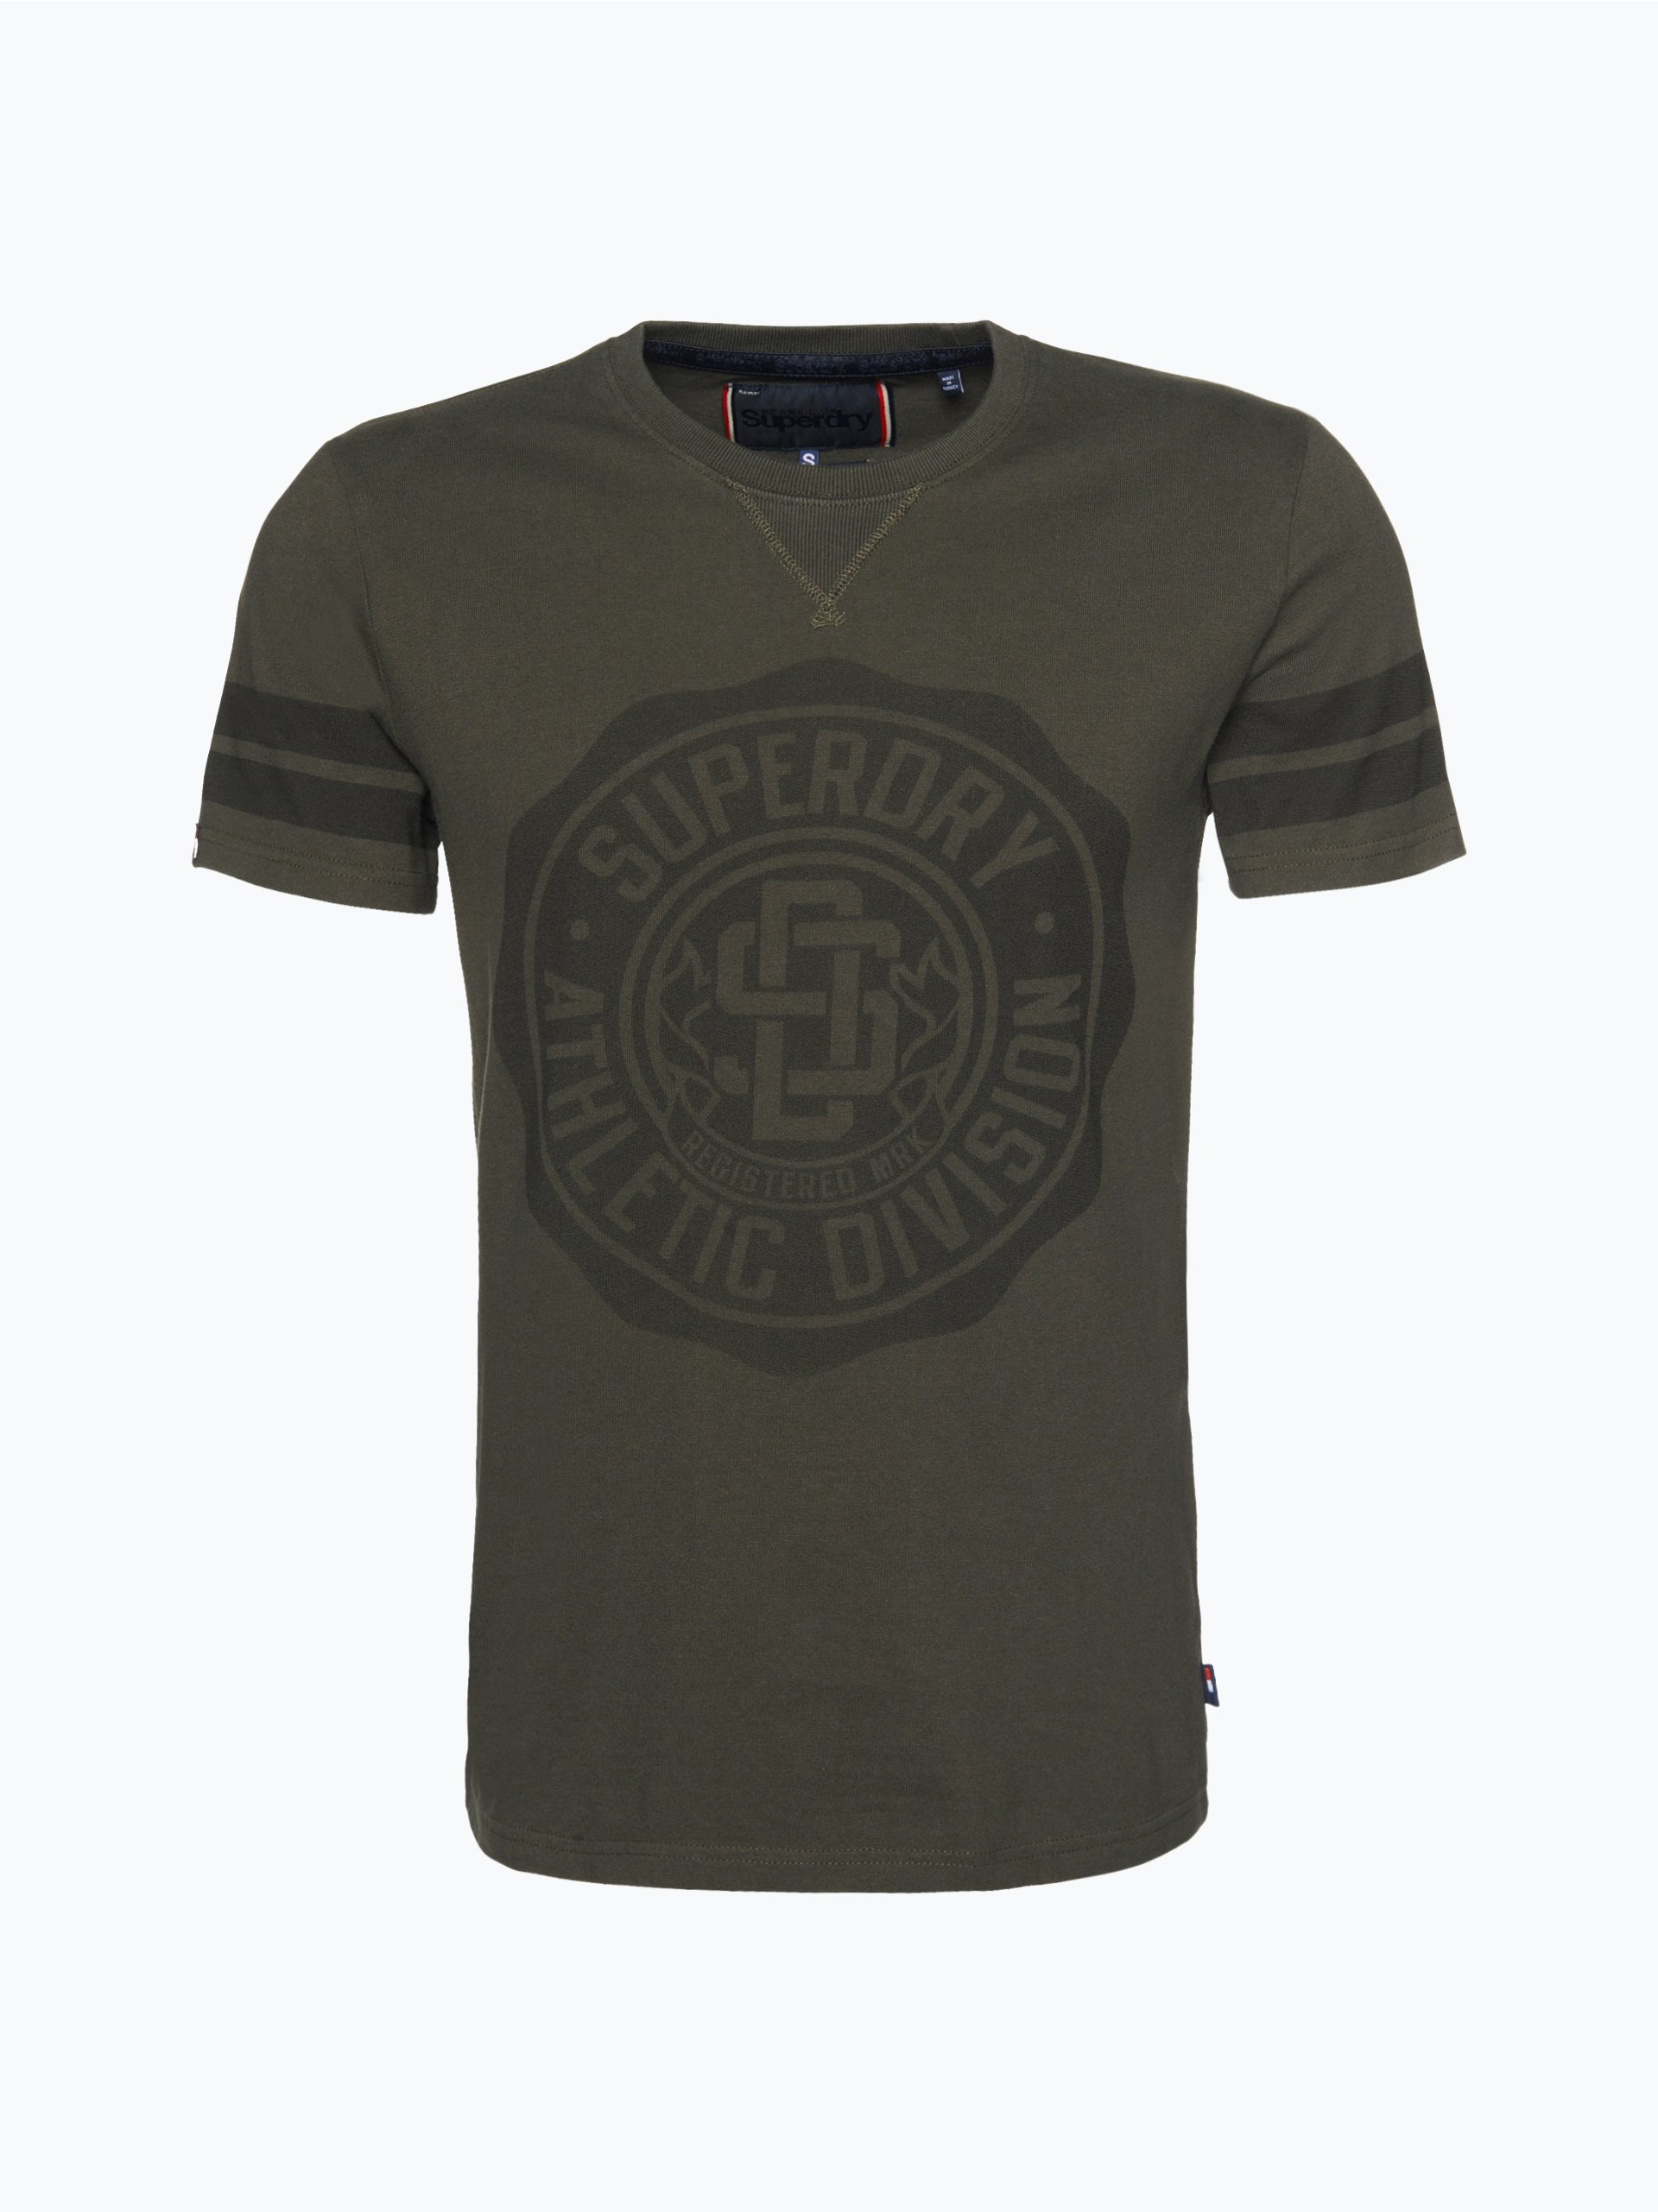 superdry herren t shirt oliv uni online kaufen vangraaf com. Black Bedroom Furniture Sets. Home Design Ideas